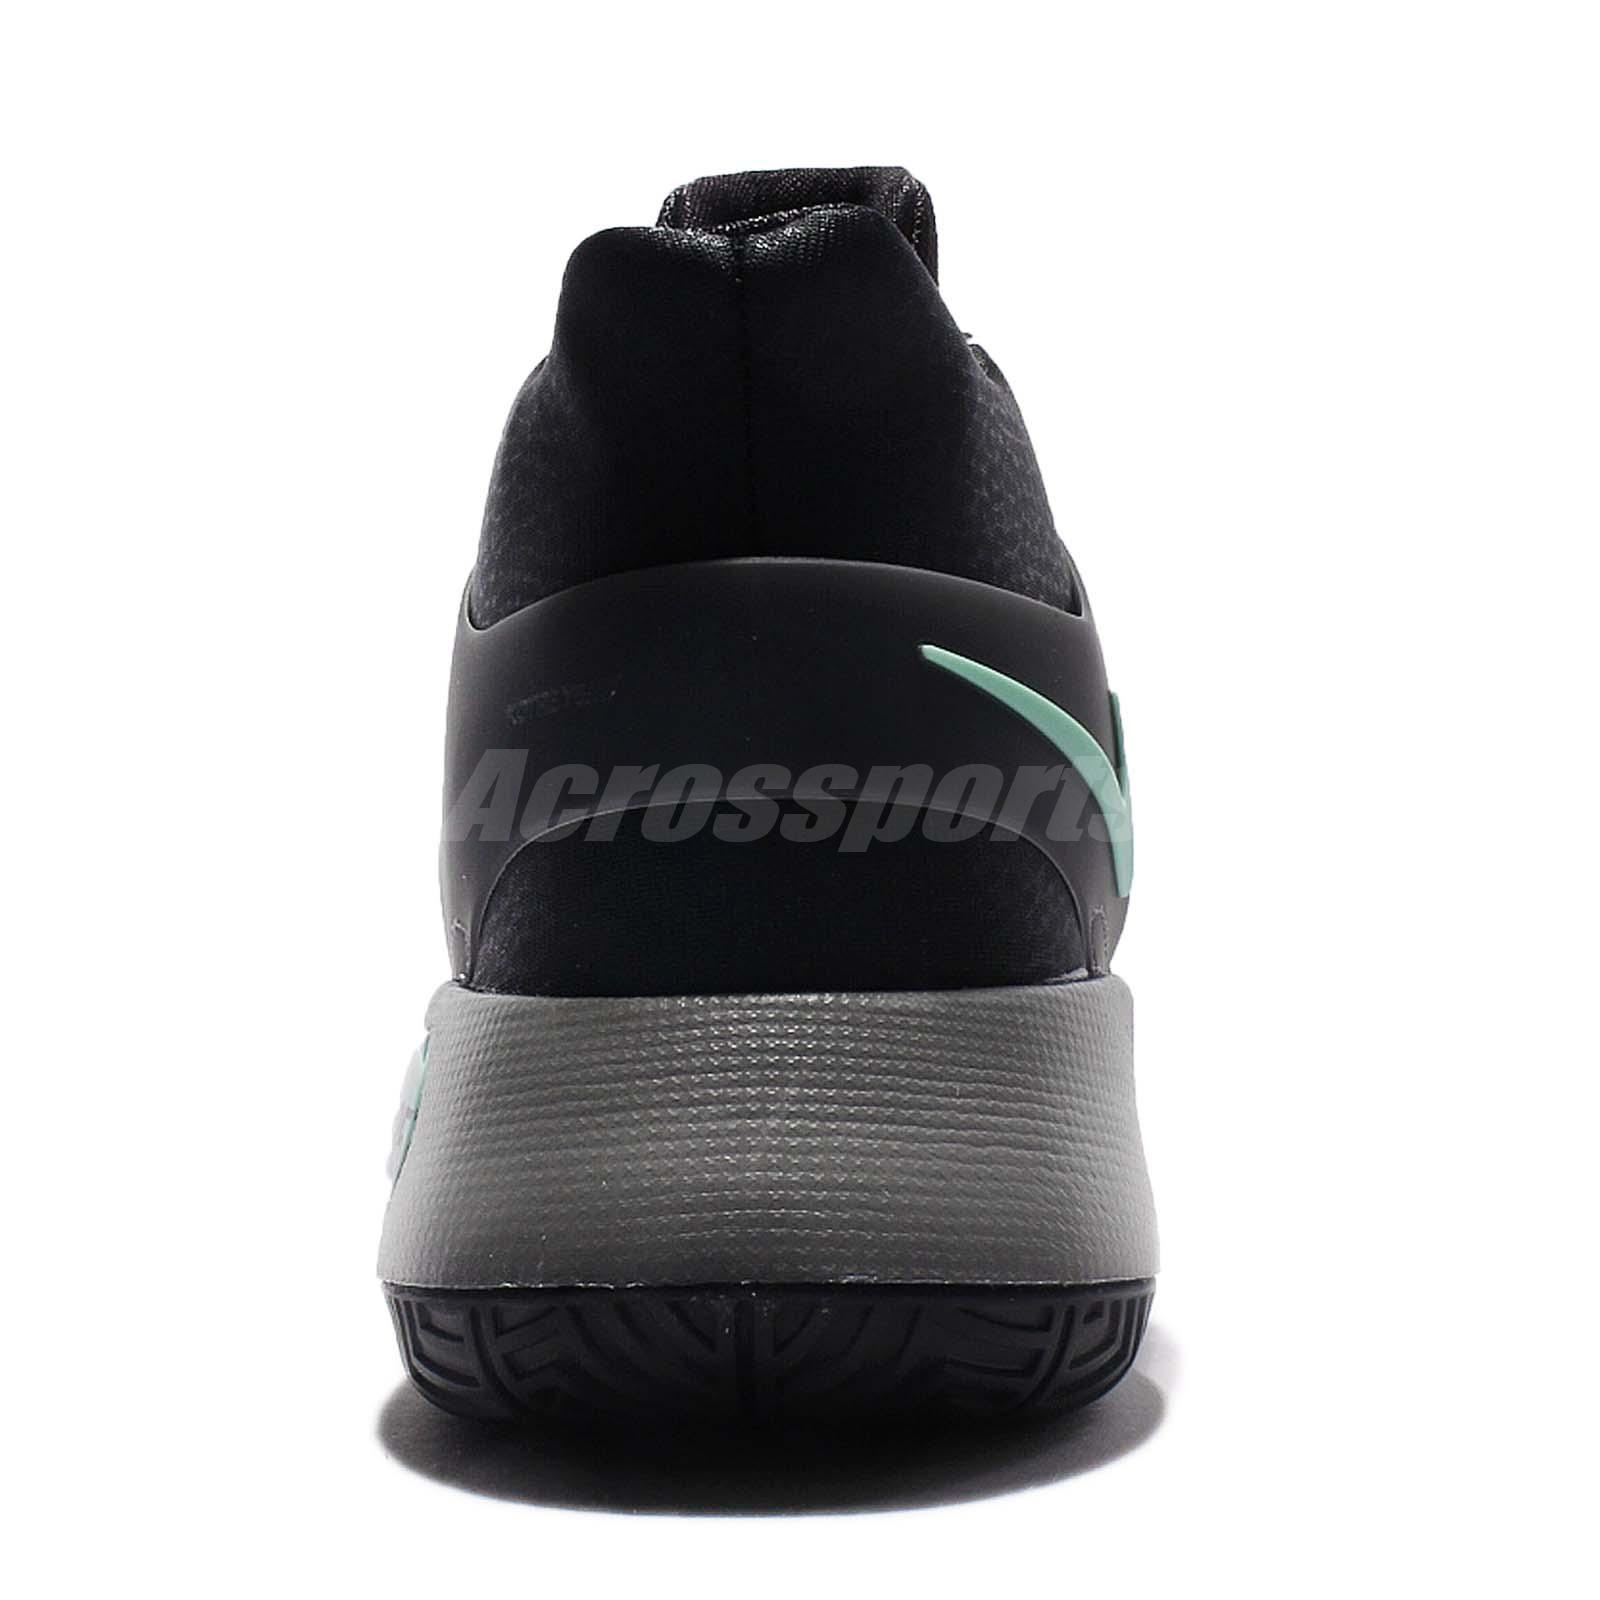 buy popular a895a 5bcb3 ... Green Mens Nike Kd Trey 5 Basketball Shoes Condition  Brand New With  Box ...